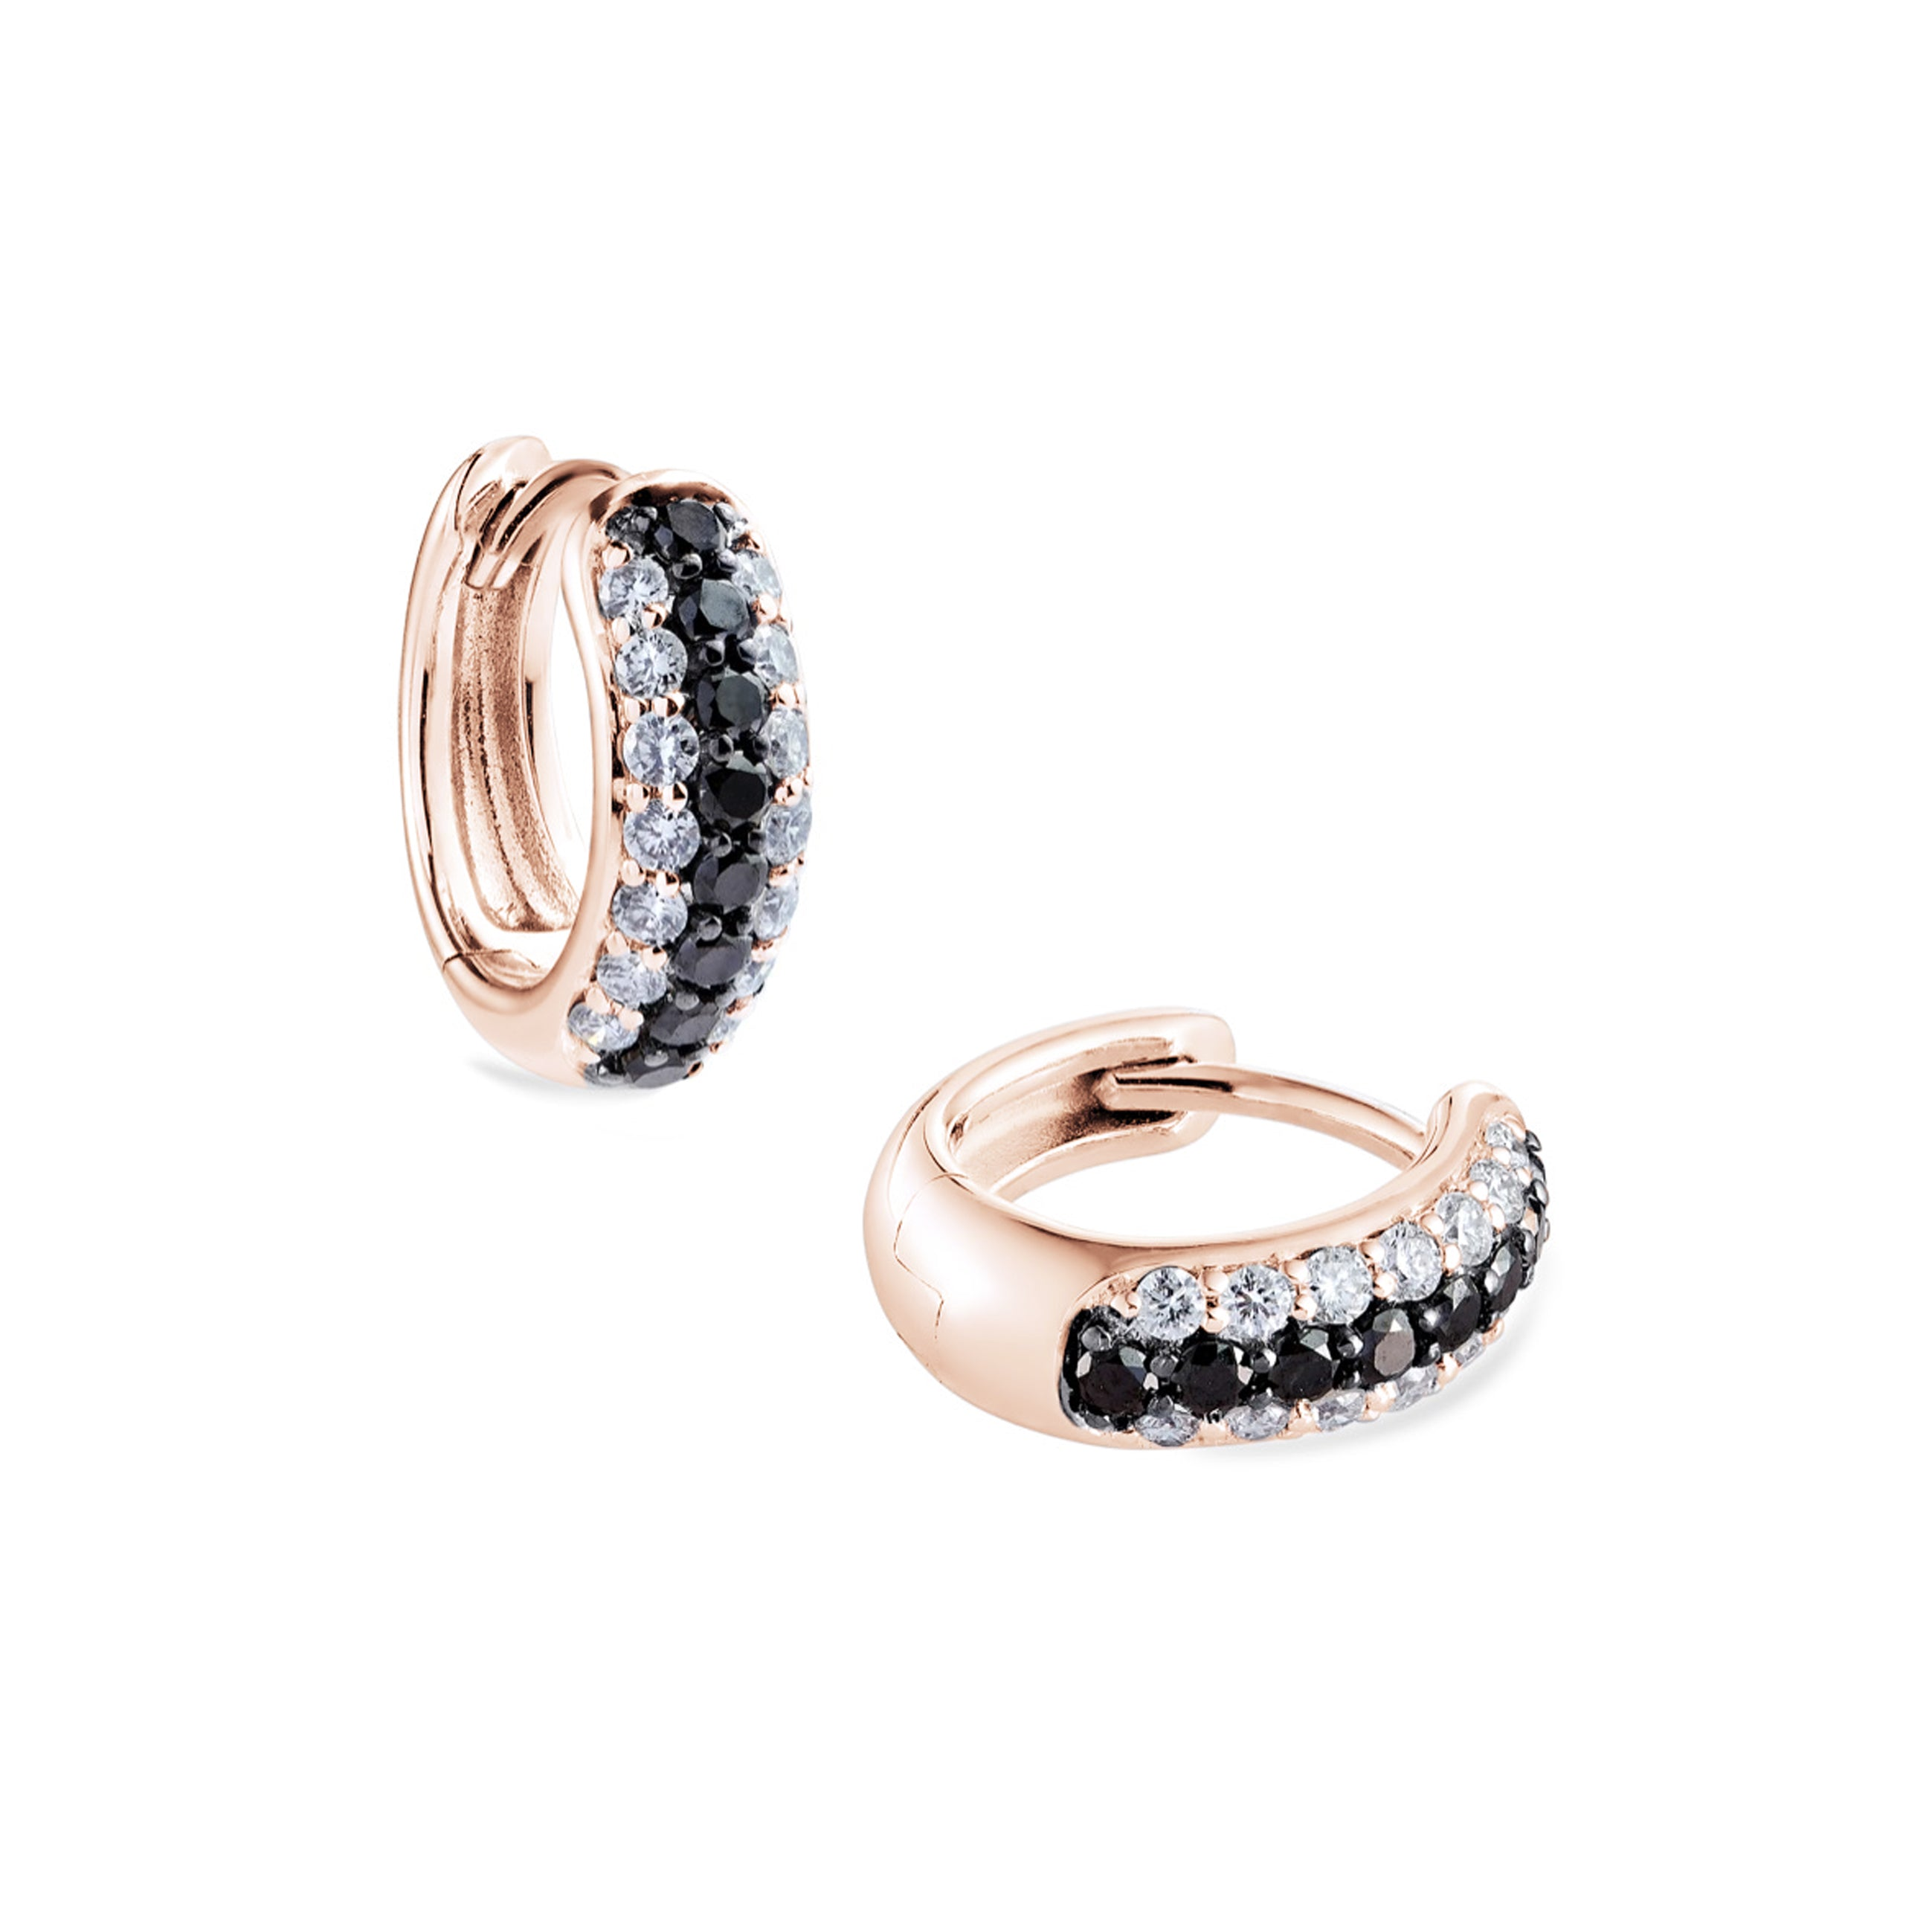 3-row pavé white & black diamond Gemopoli Huggies rose gold